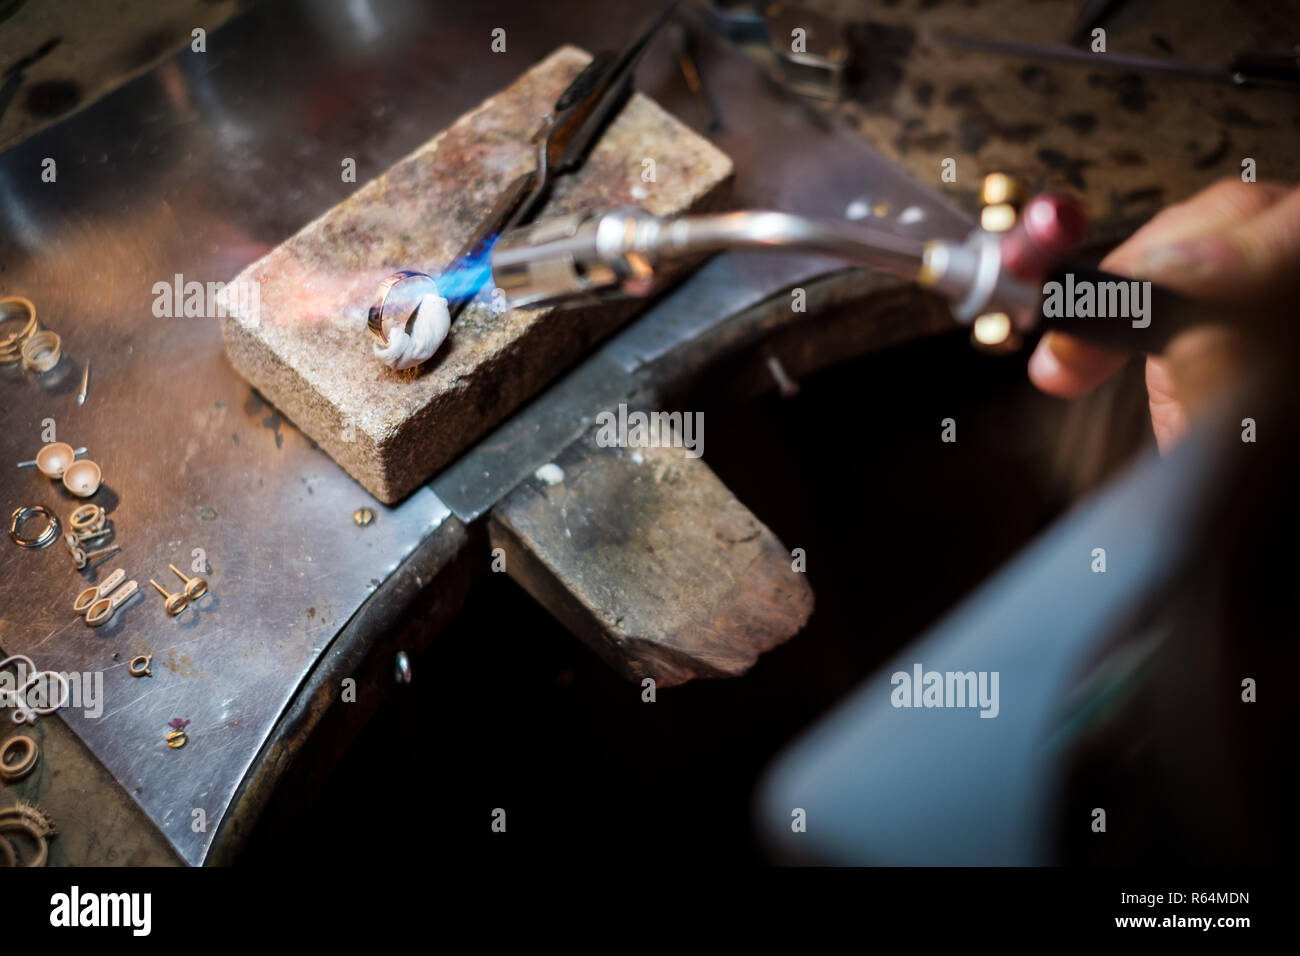 Jeweler soldering on work bench a gold ring with flame from welding torch in an authentic jewelry workshop - Stock Image